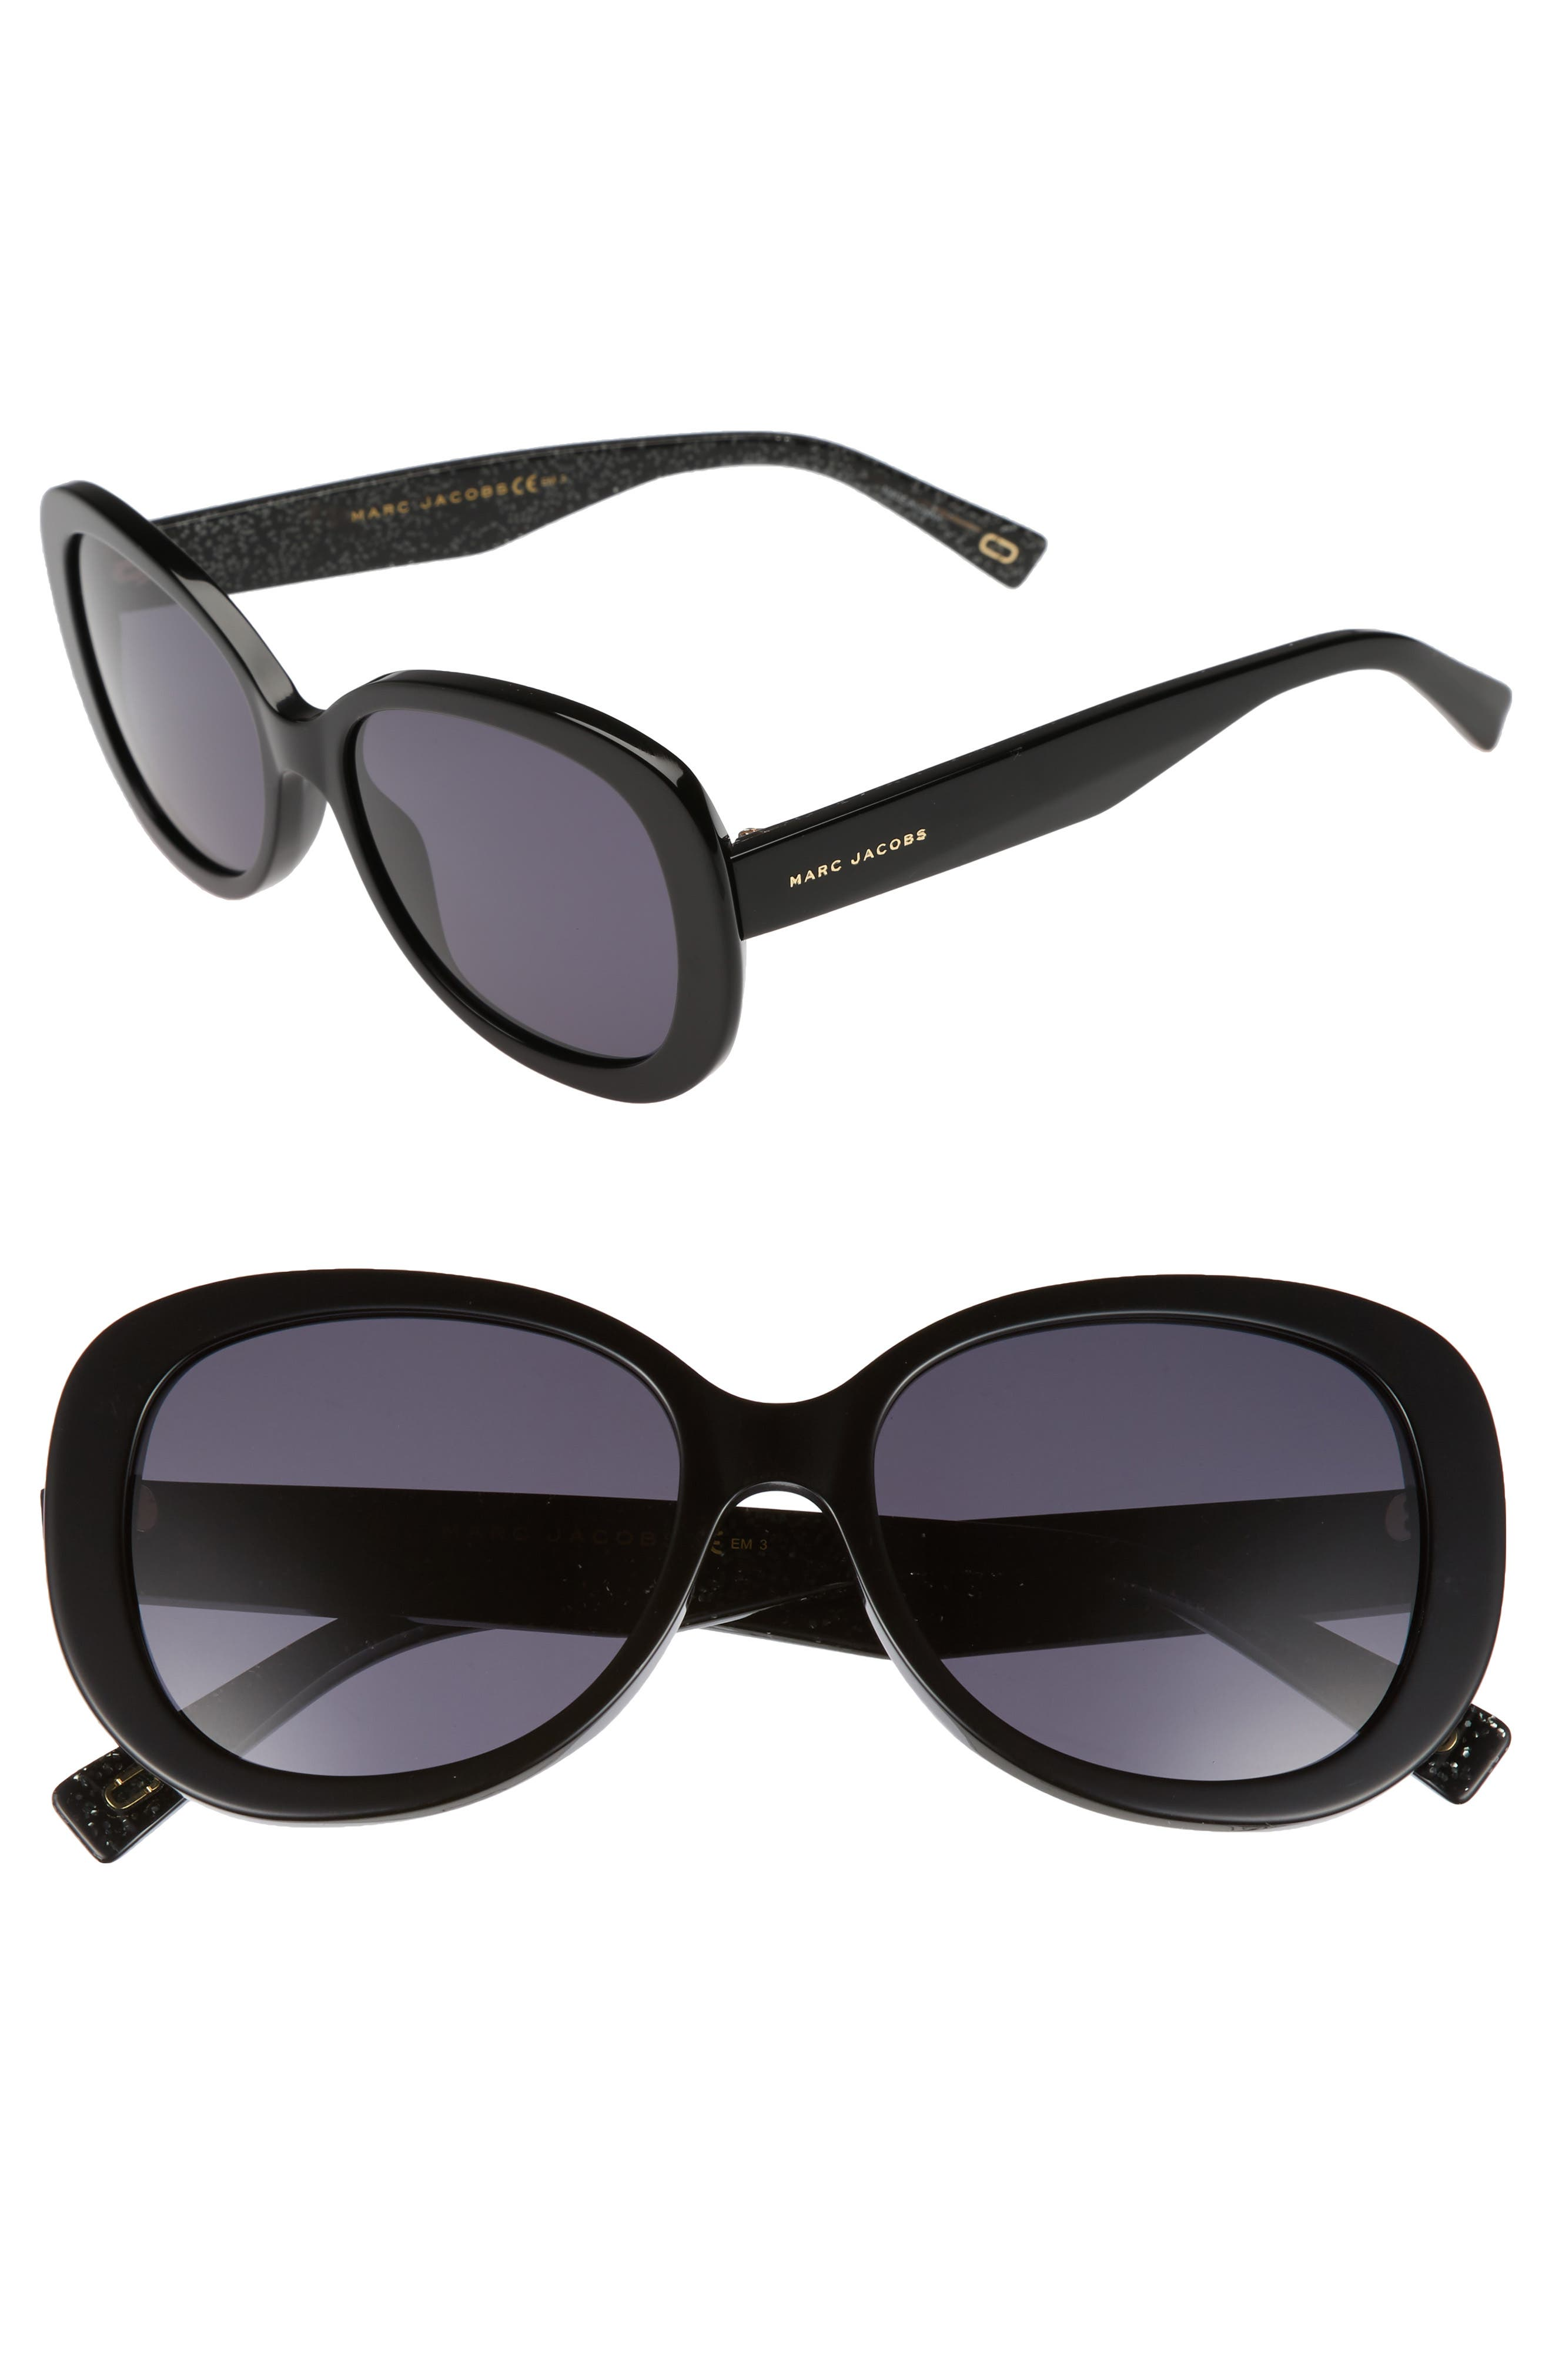 Alternate Image 1 Selected - MARC JACOBS 56mm Butterfly Sunglasses